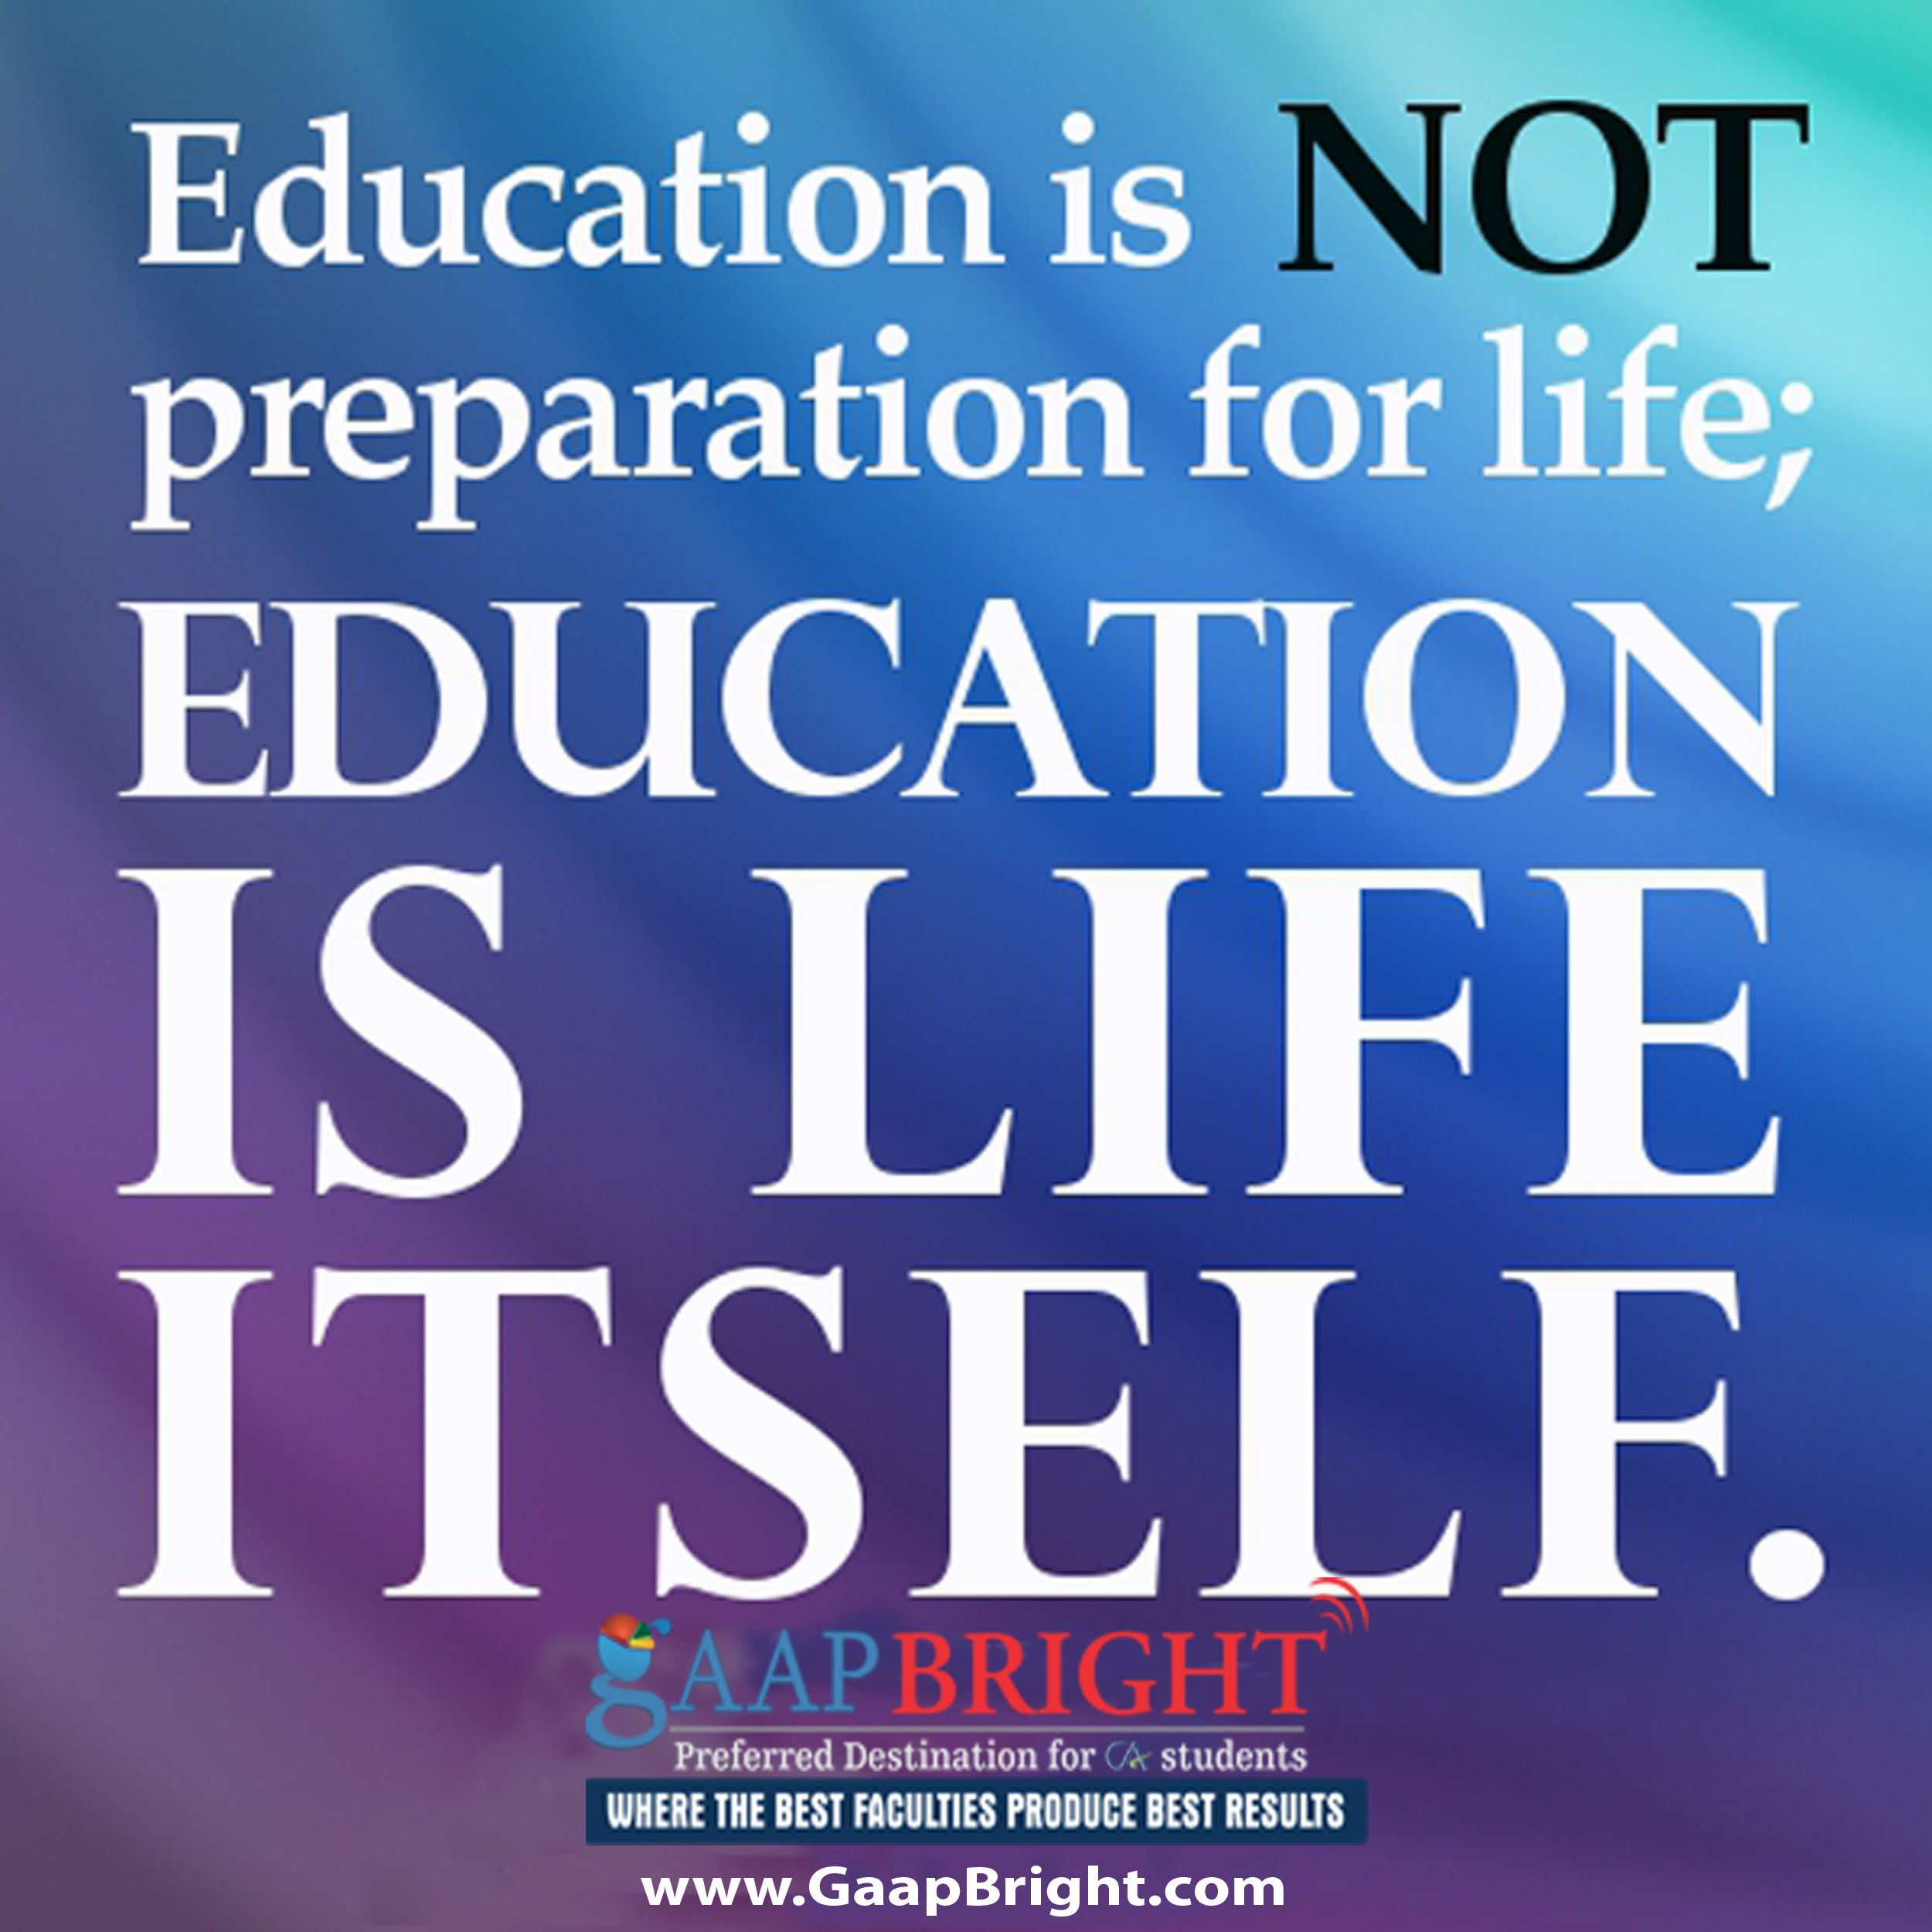 Life Education Quotes Quote Of The Day Visit Us At Www.gaapbright